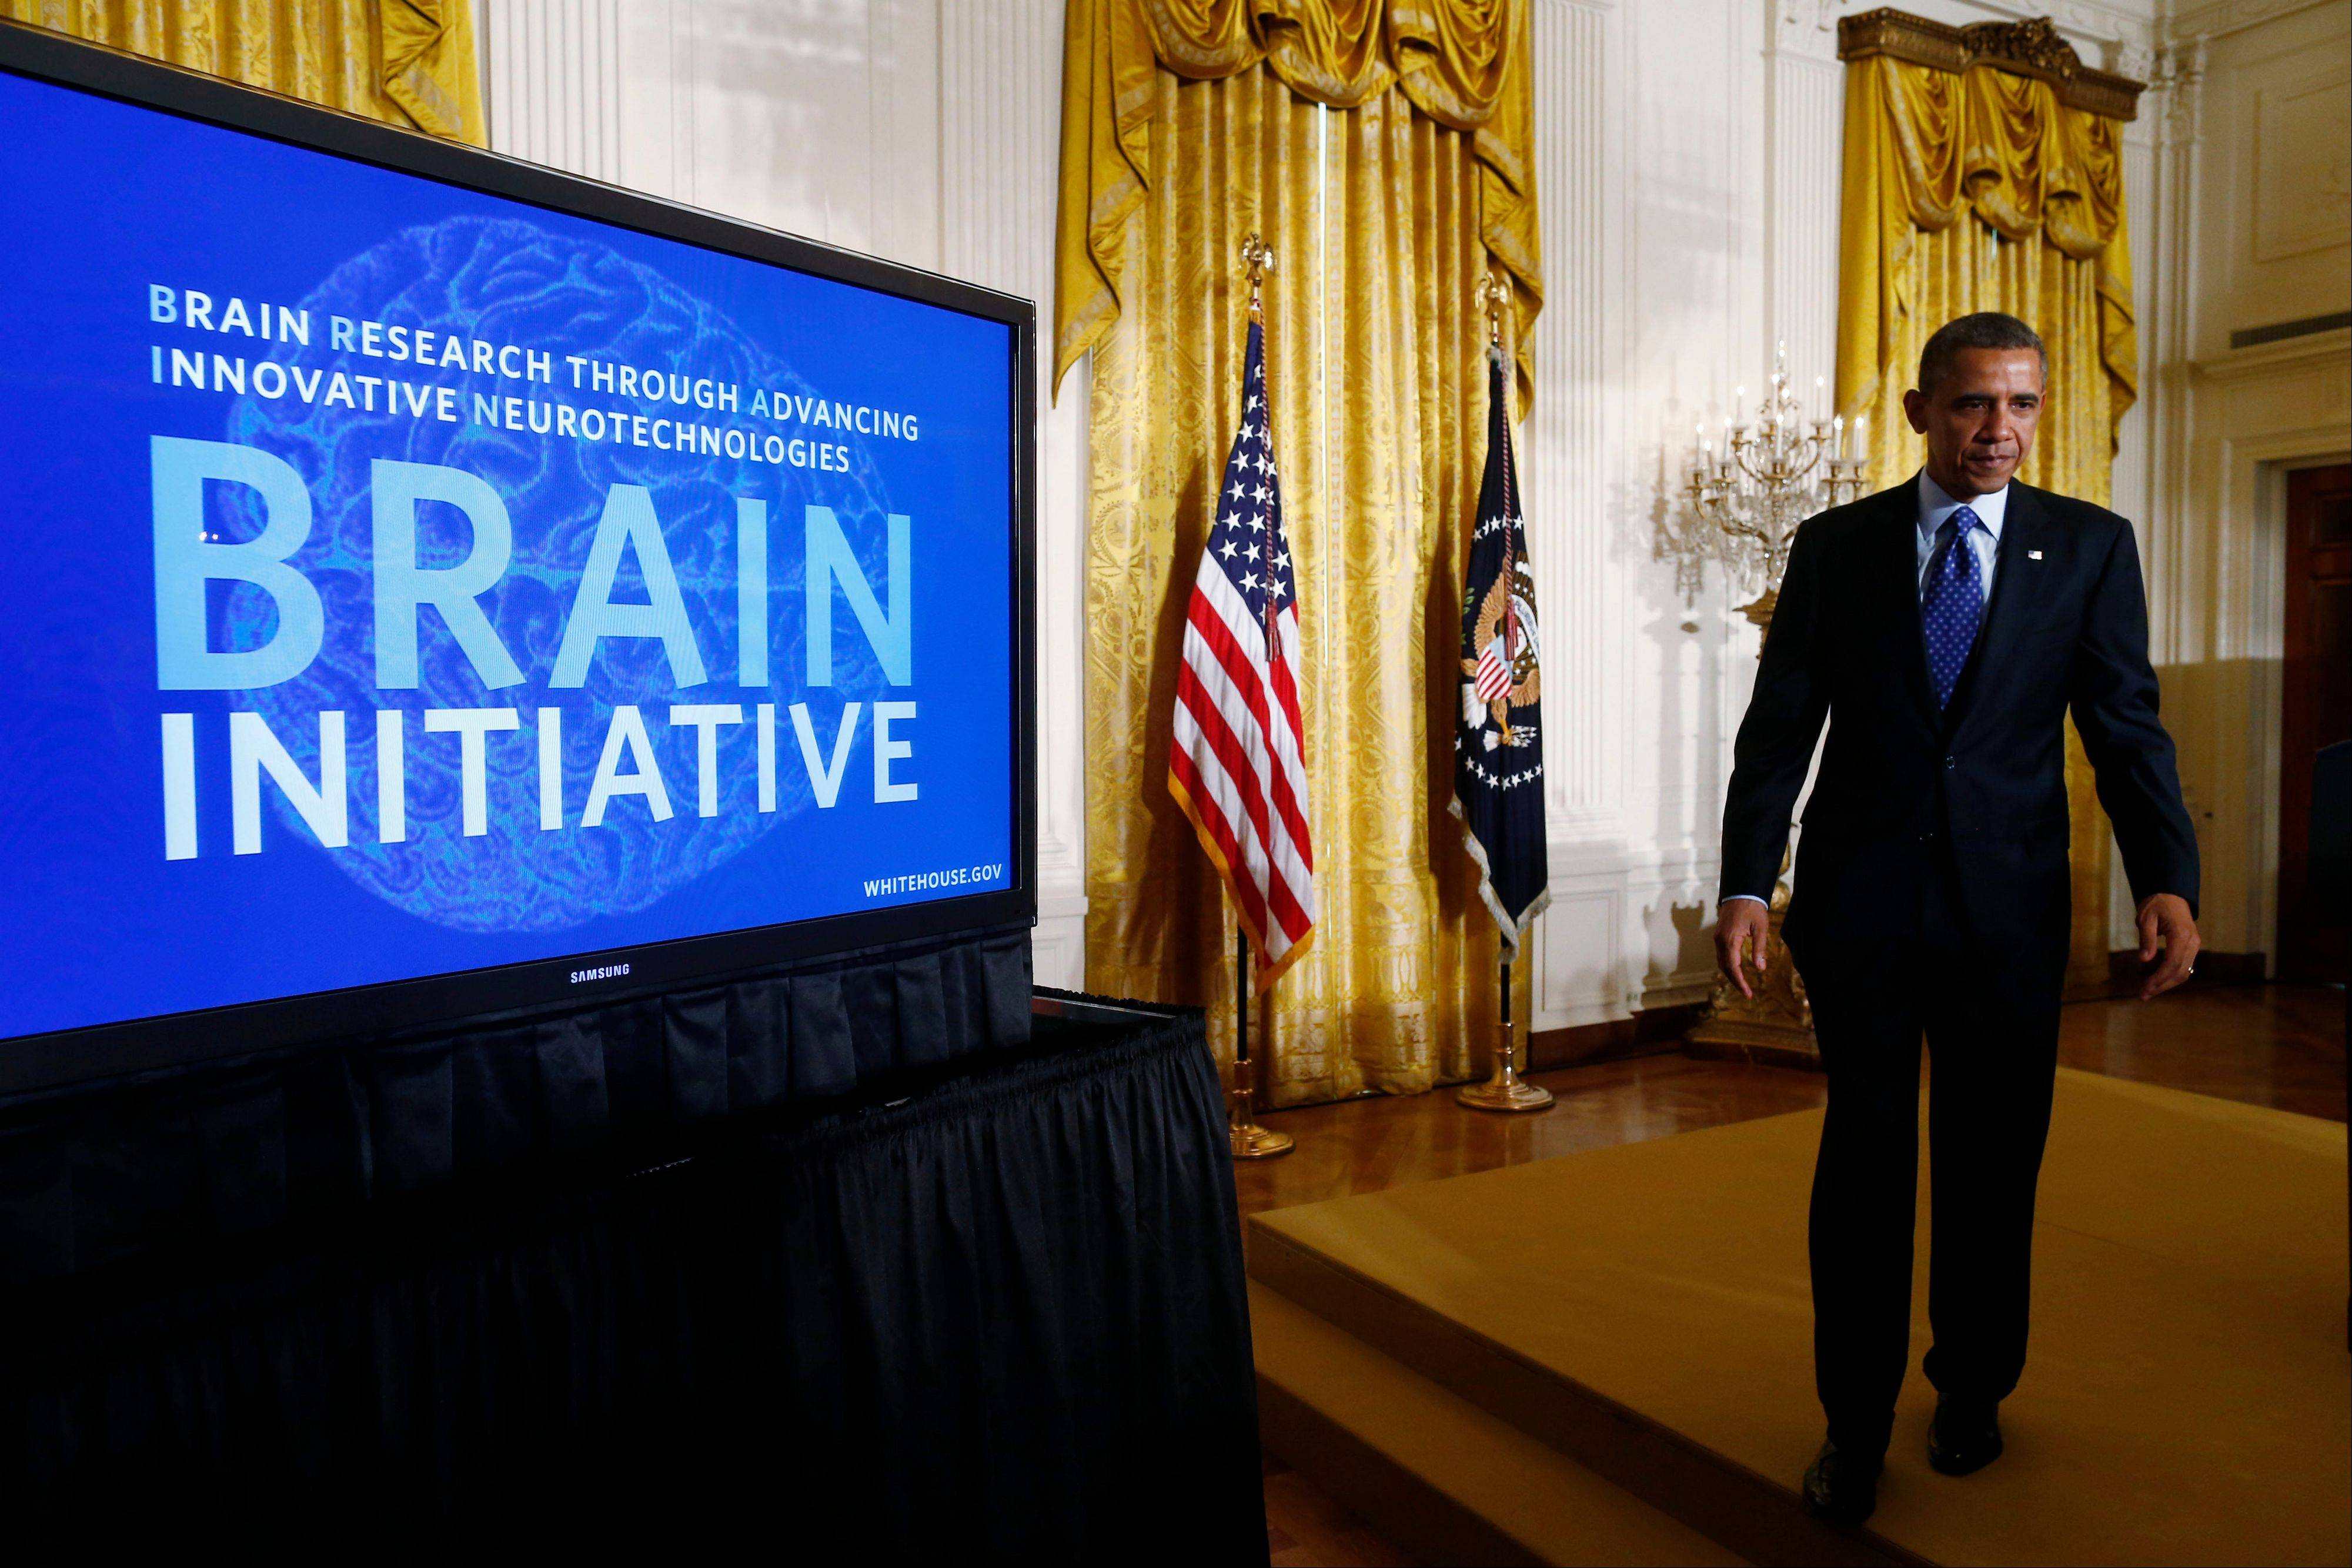 President Barack Obama on Tuesday outlined the BRAIN Initiative whose goal is to find treatments for some of the most common brain disorders, led by Alzheimer's, epilepsy and brain injuries.